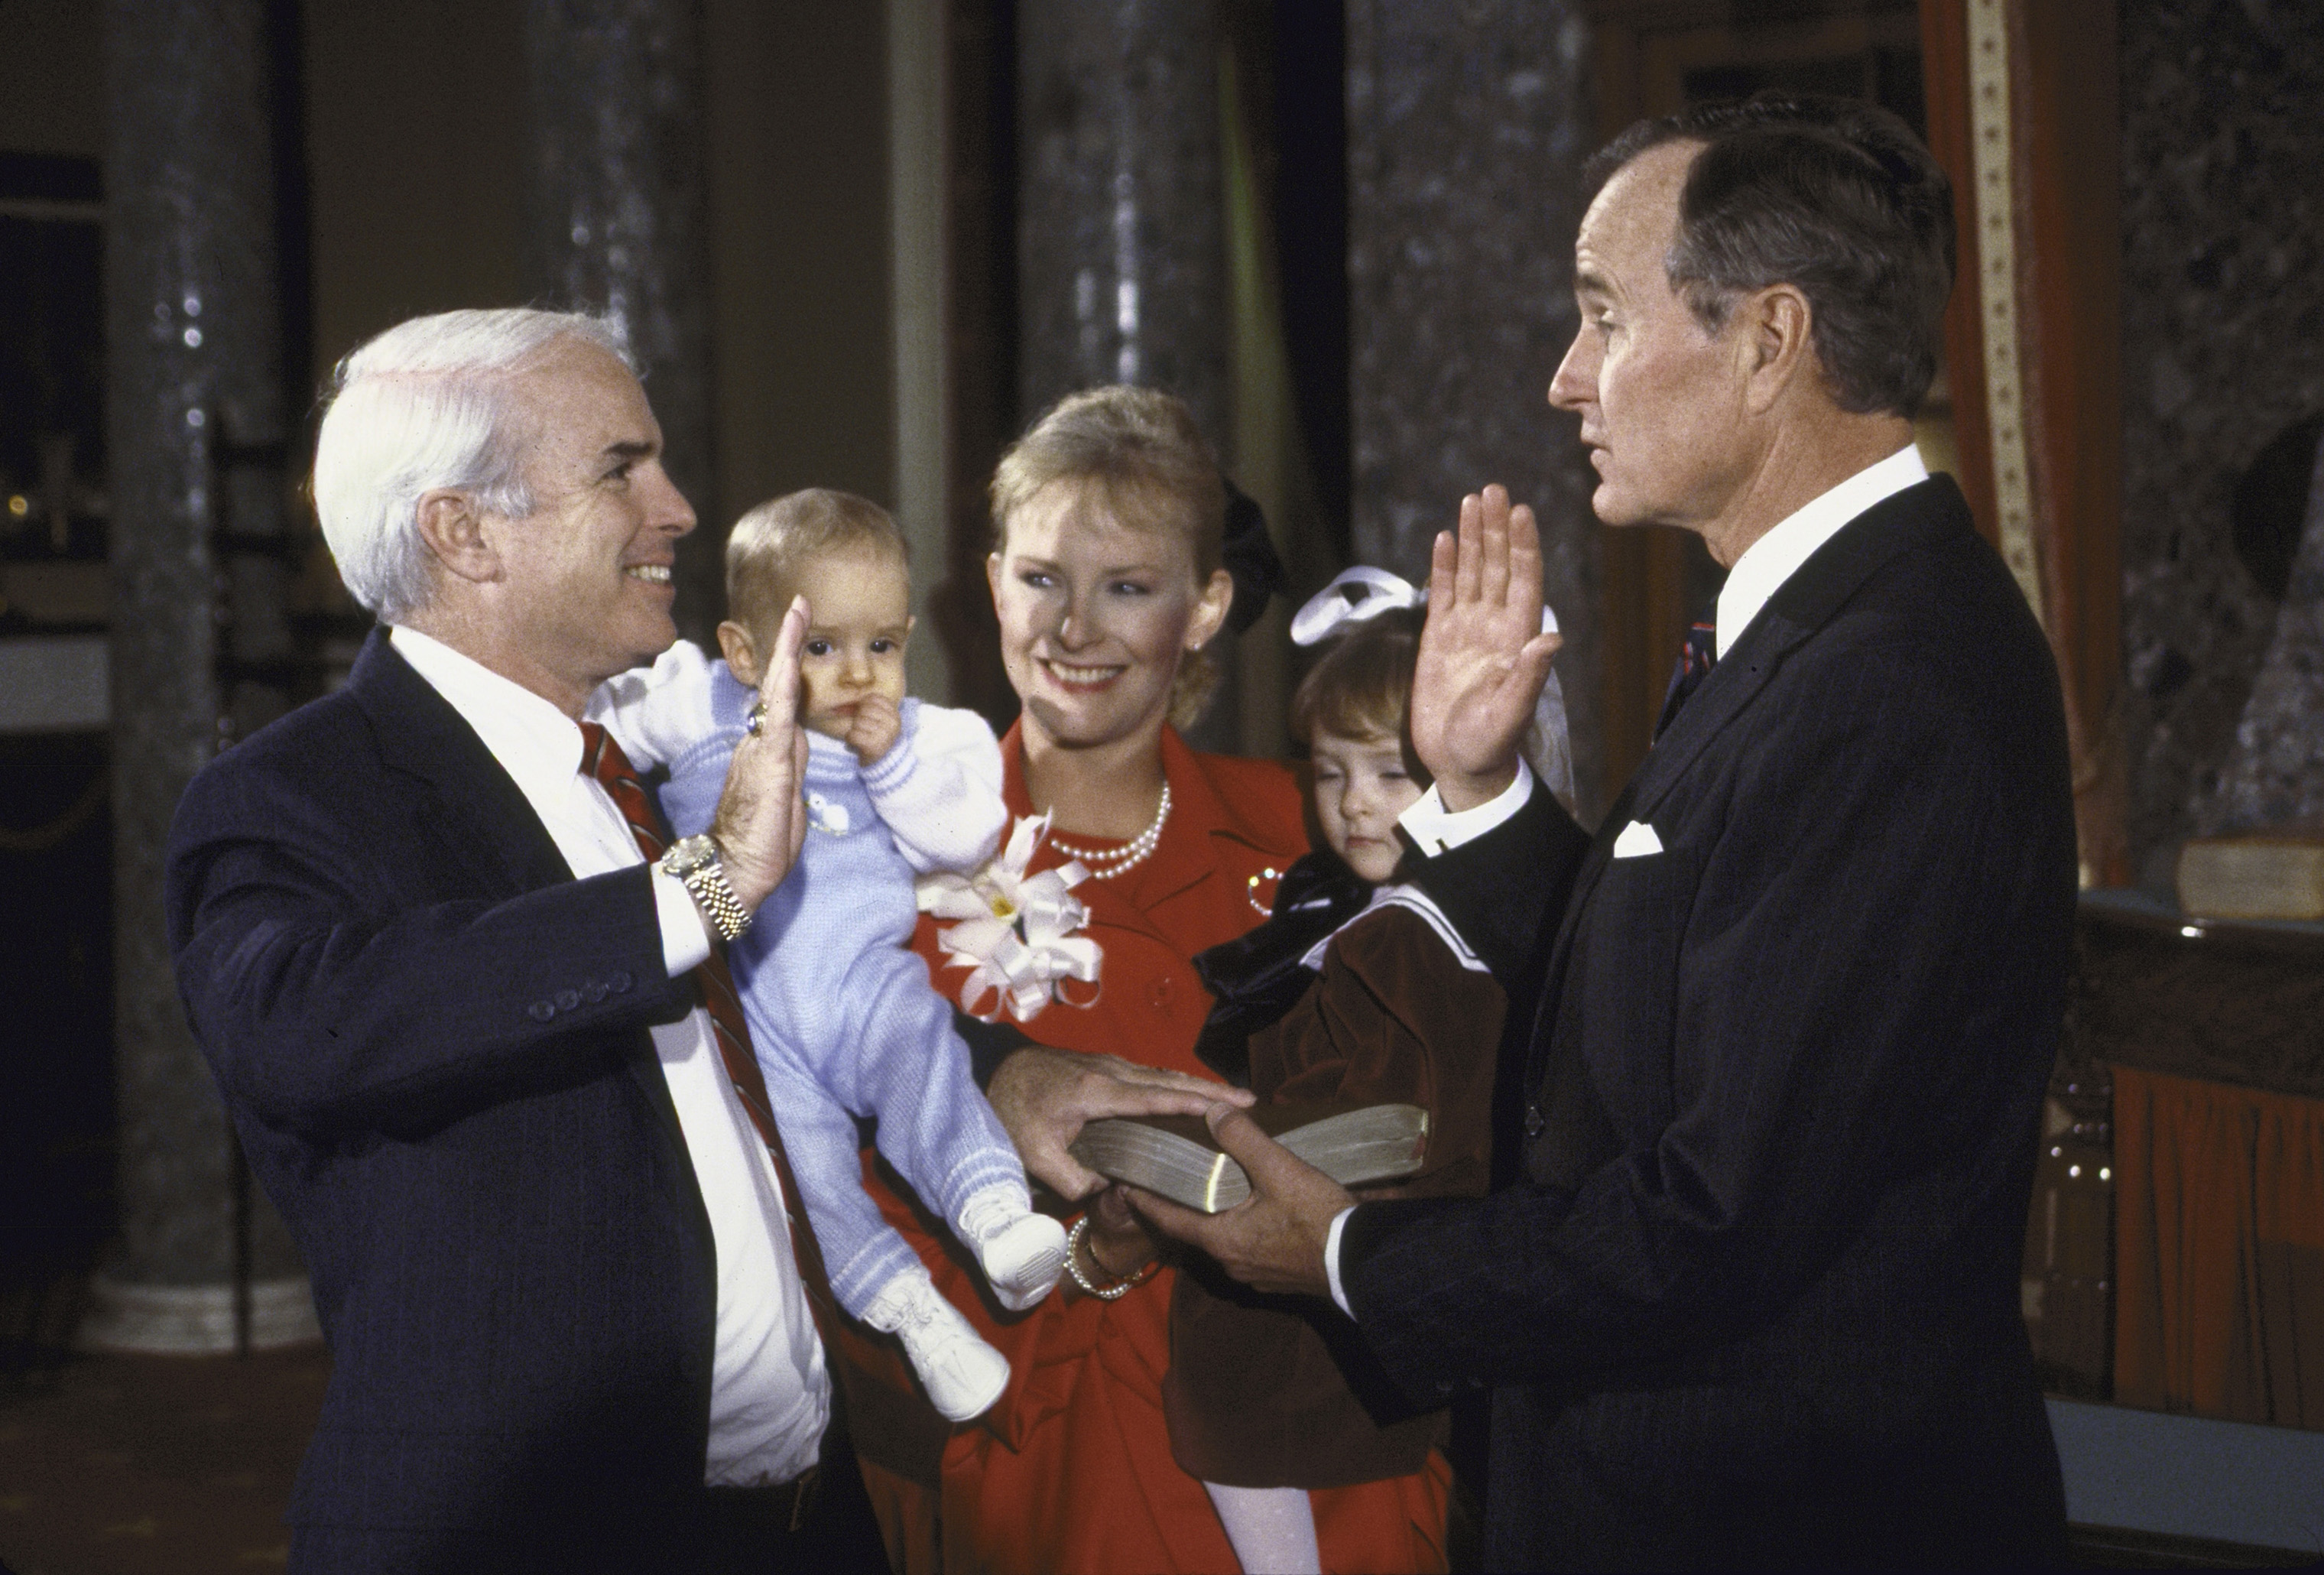 Vice President George H.W. Bush re-enacting Senate Swear-In with Sen. John S. McCain and his family.